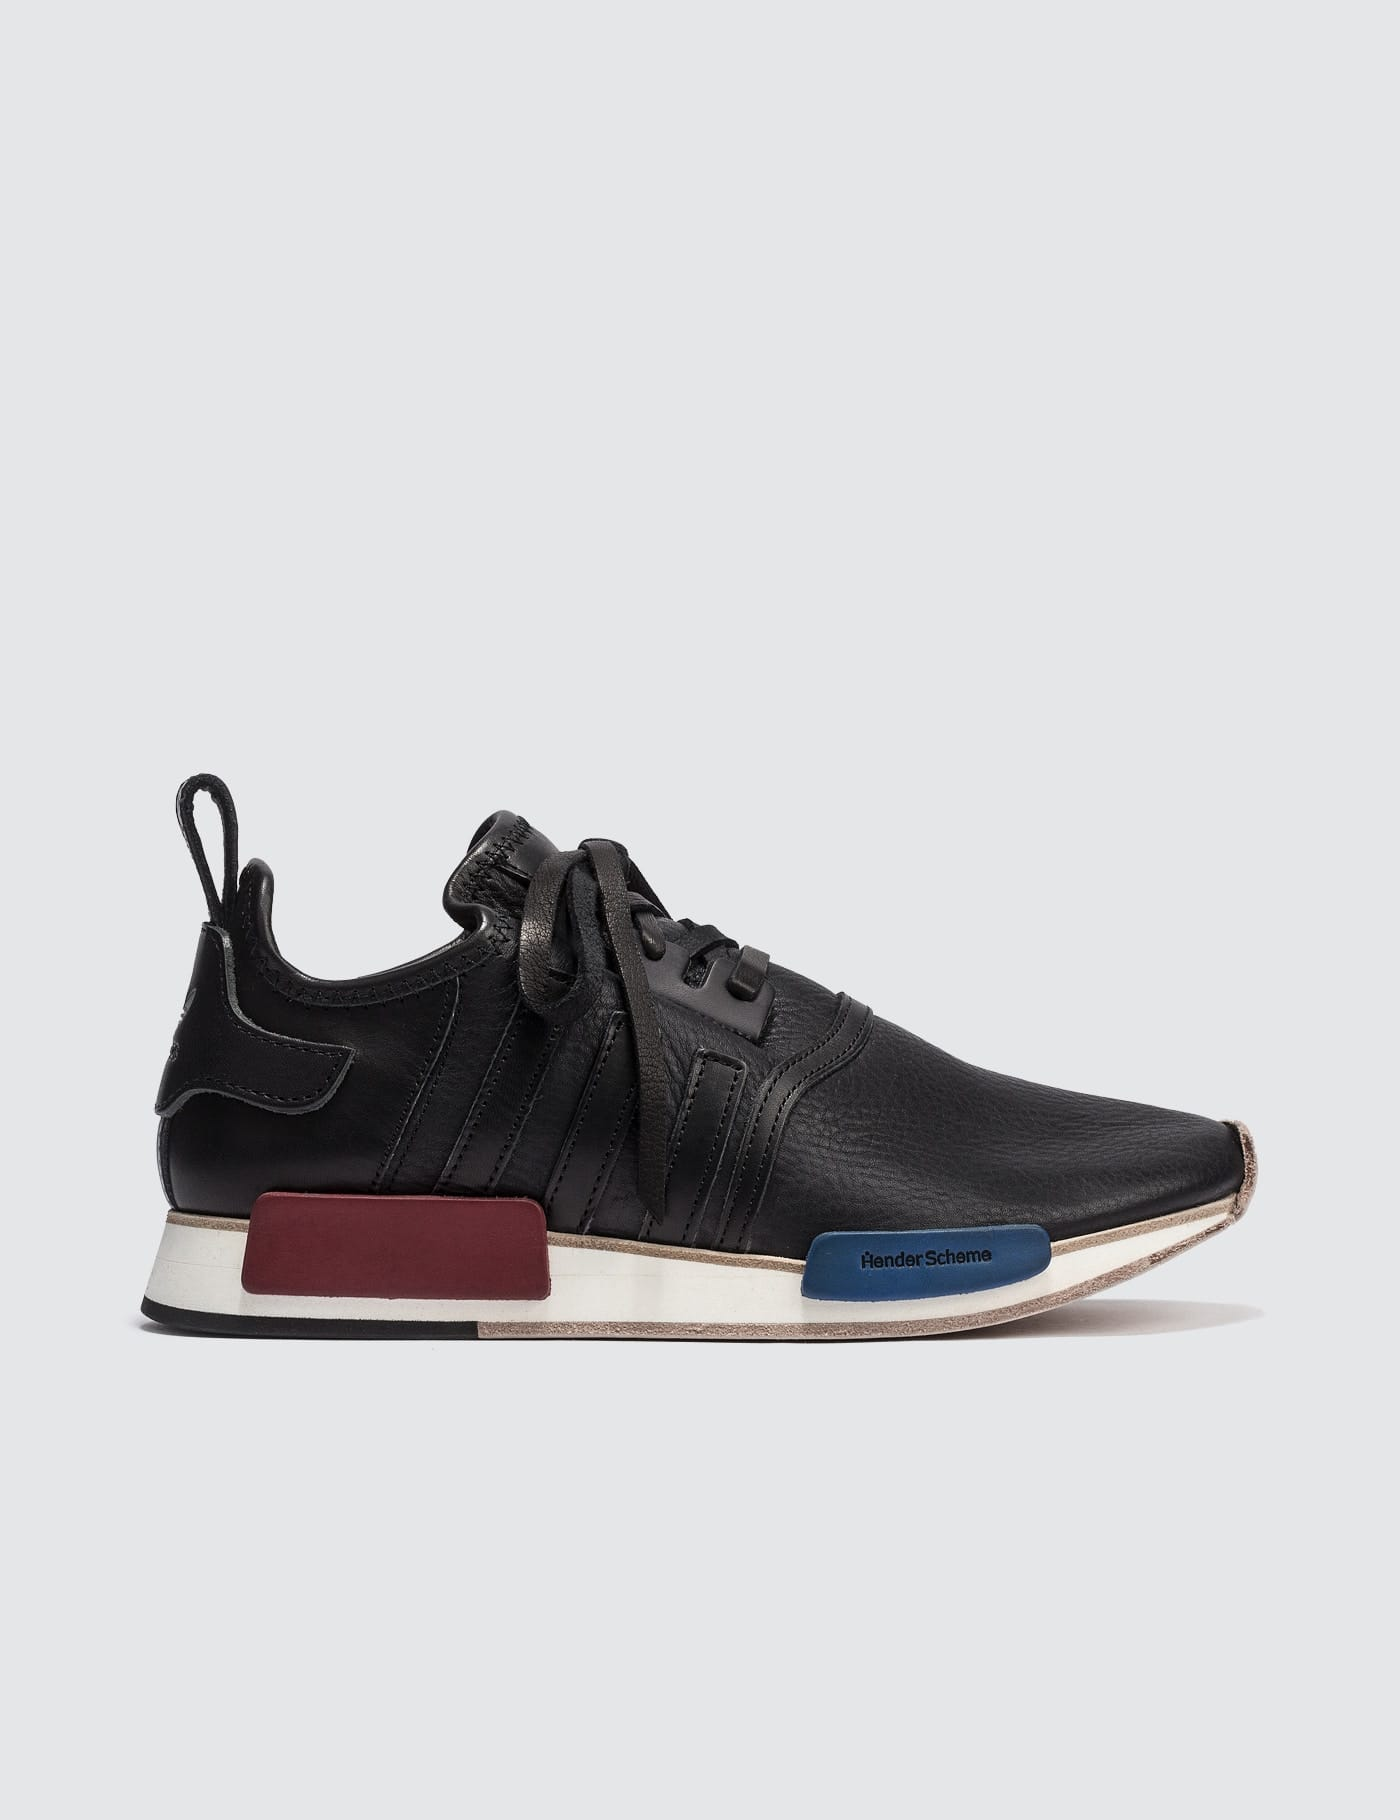 ca0e24009 Buy Original Hender Scheme x Adidas NMD R1 at Indonesia